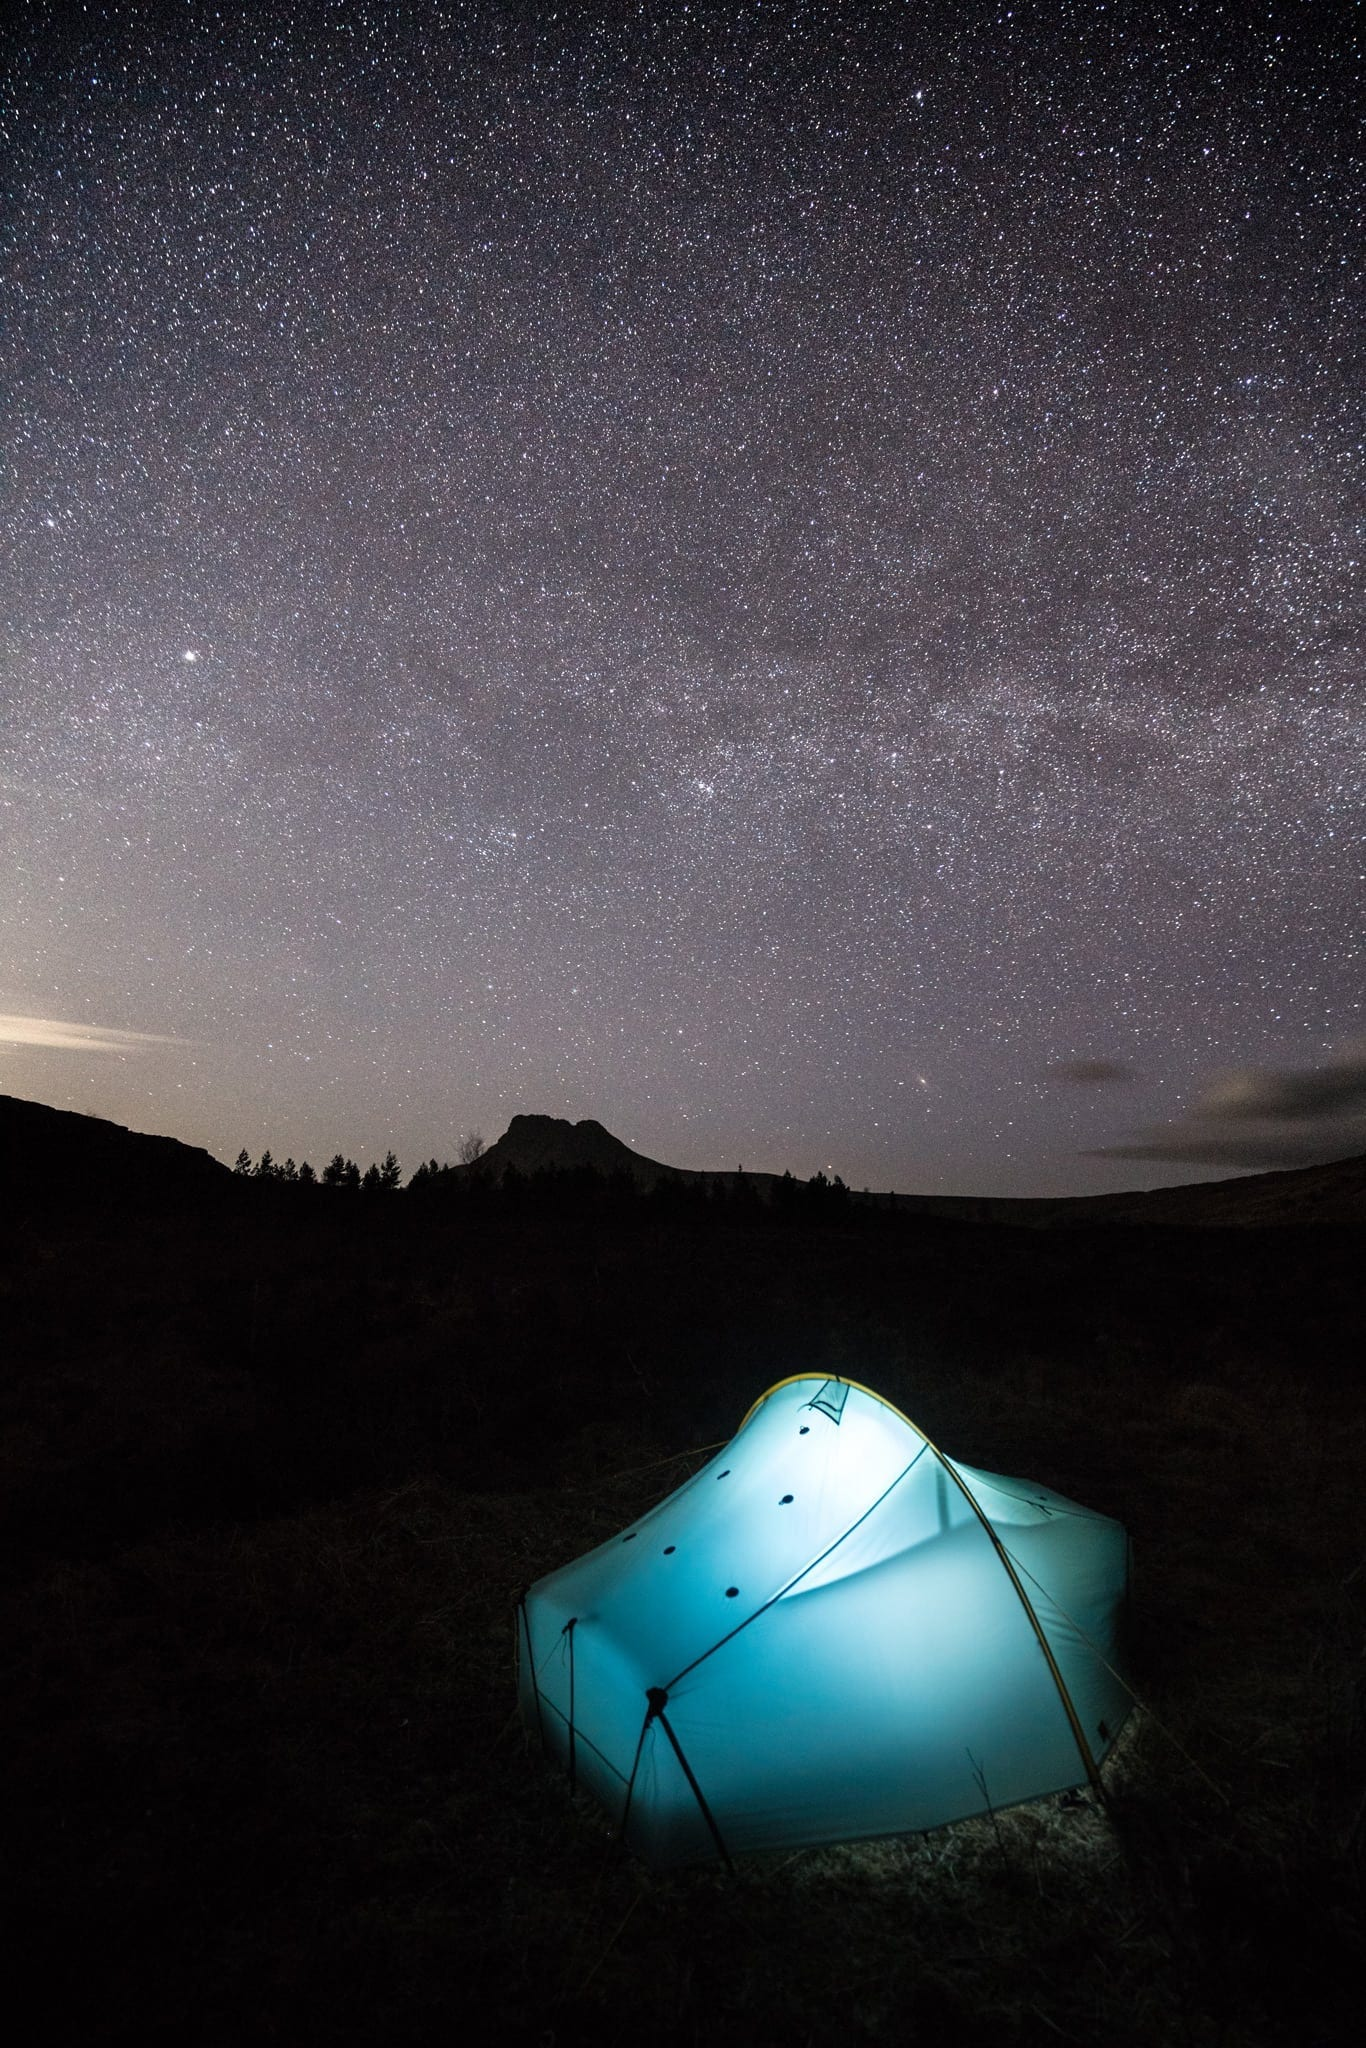 Wild Camping Under The Stars - Assynt Wild Camping Photography Workshop